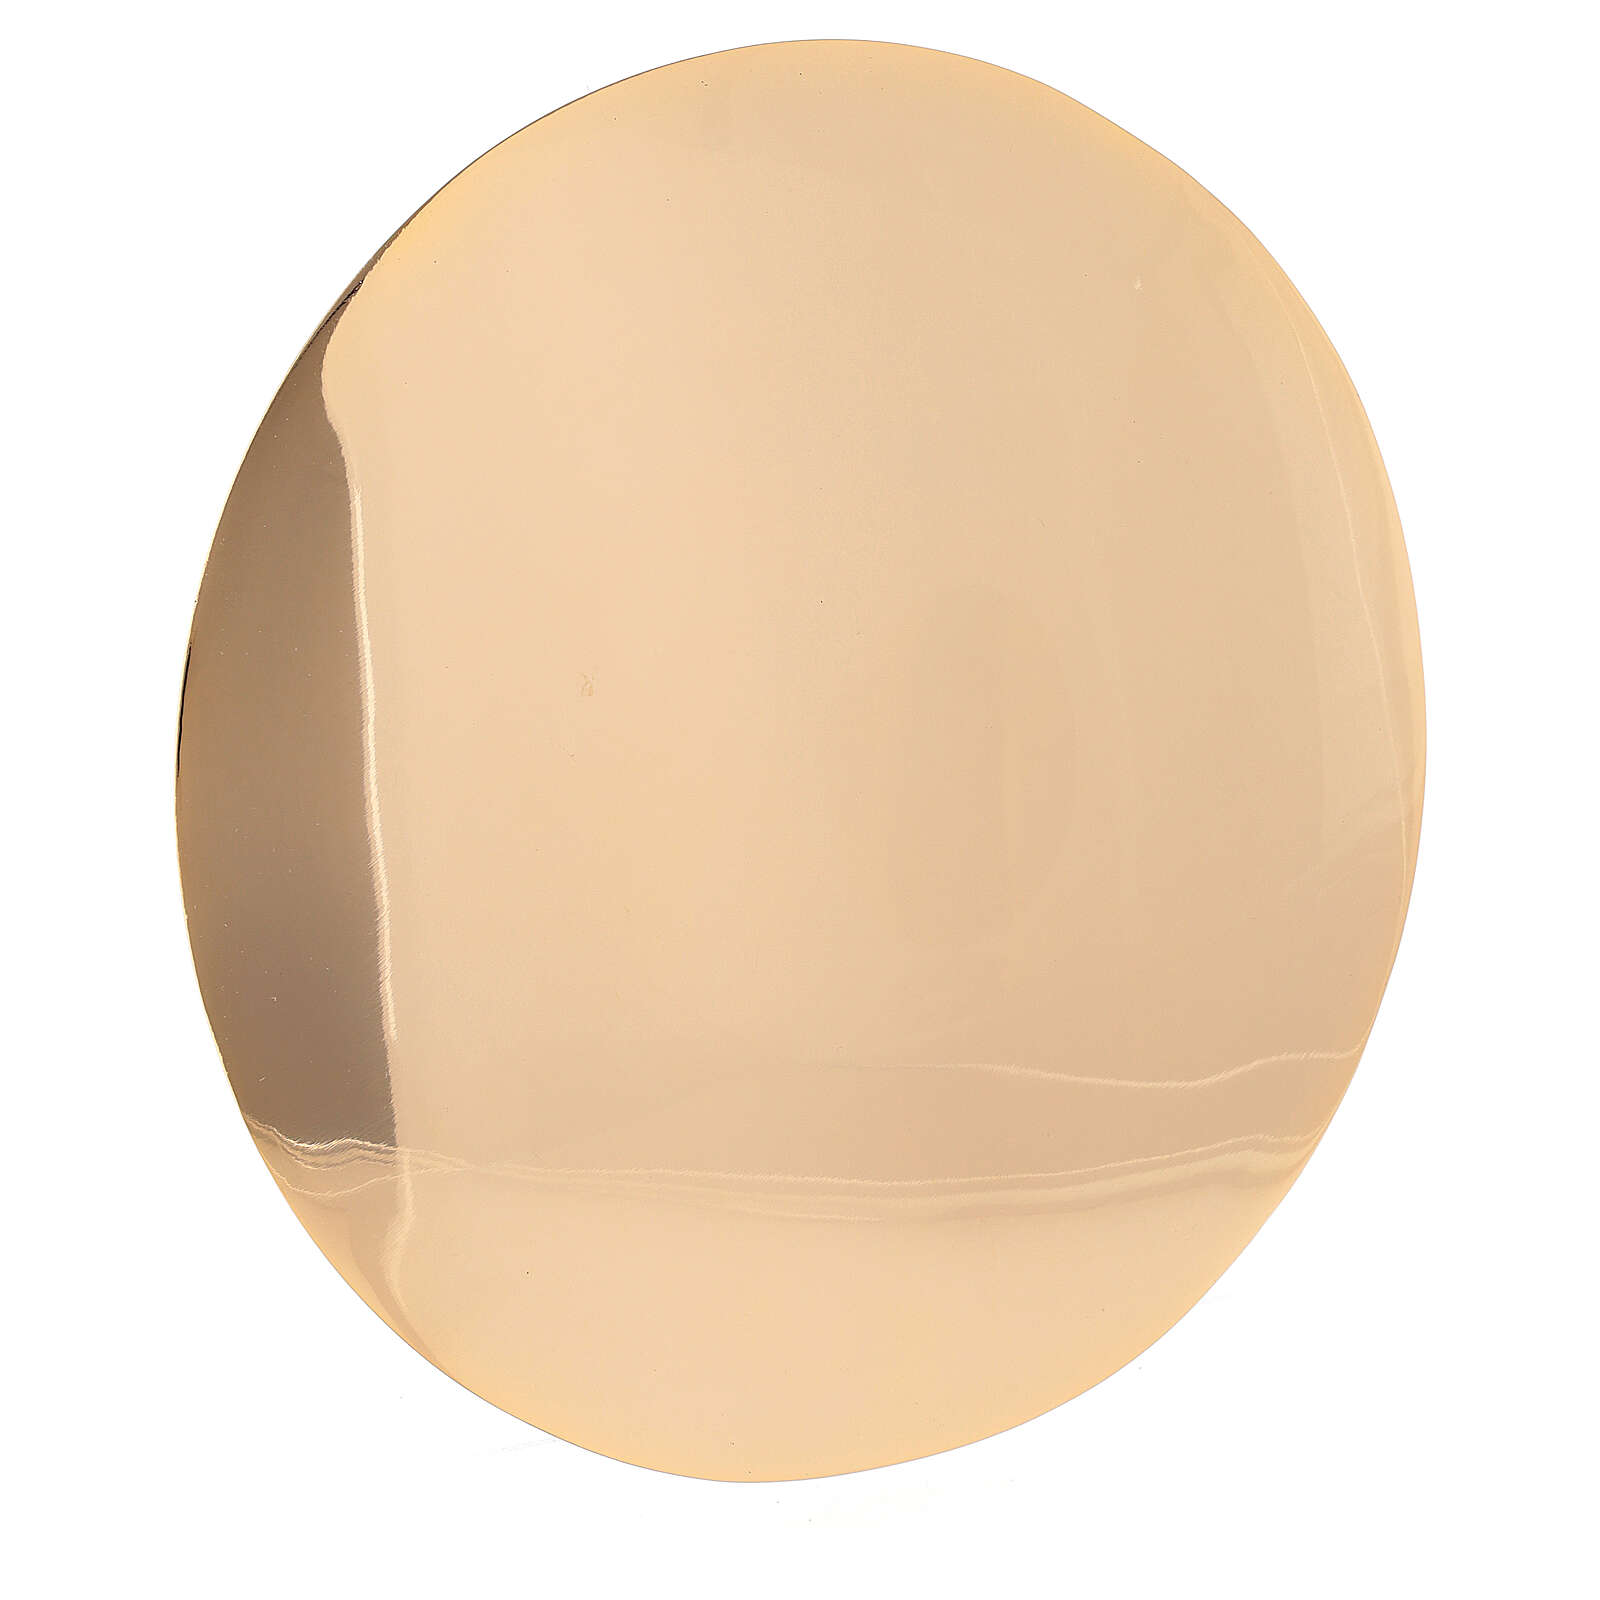 Simple gold plated brass paten d. 6 1/4 in 4